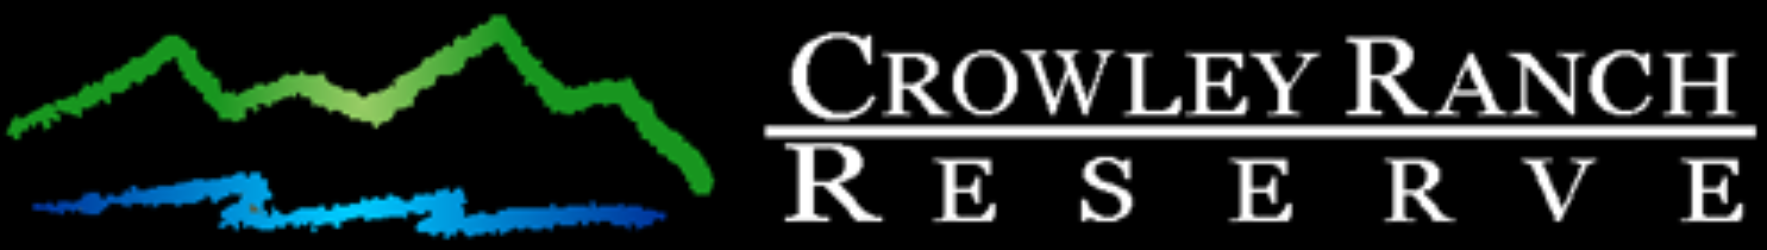 Crowley Ranch Reserve